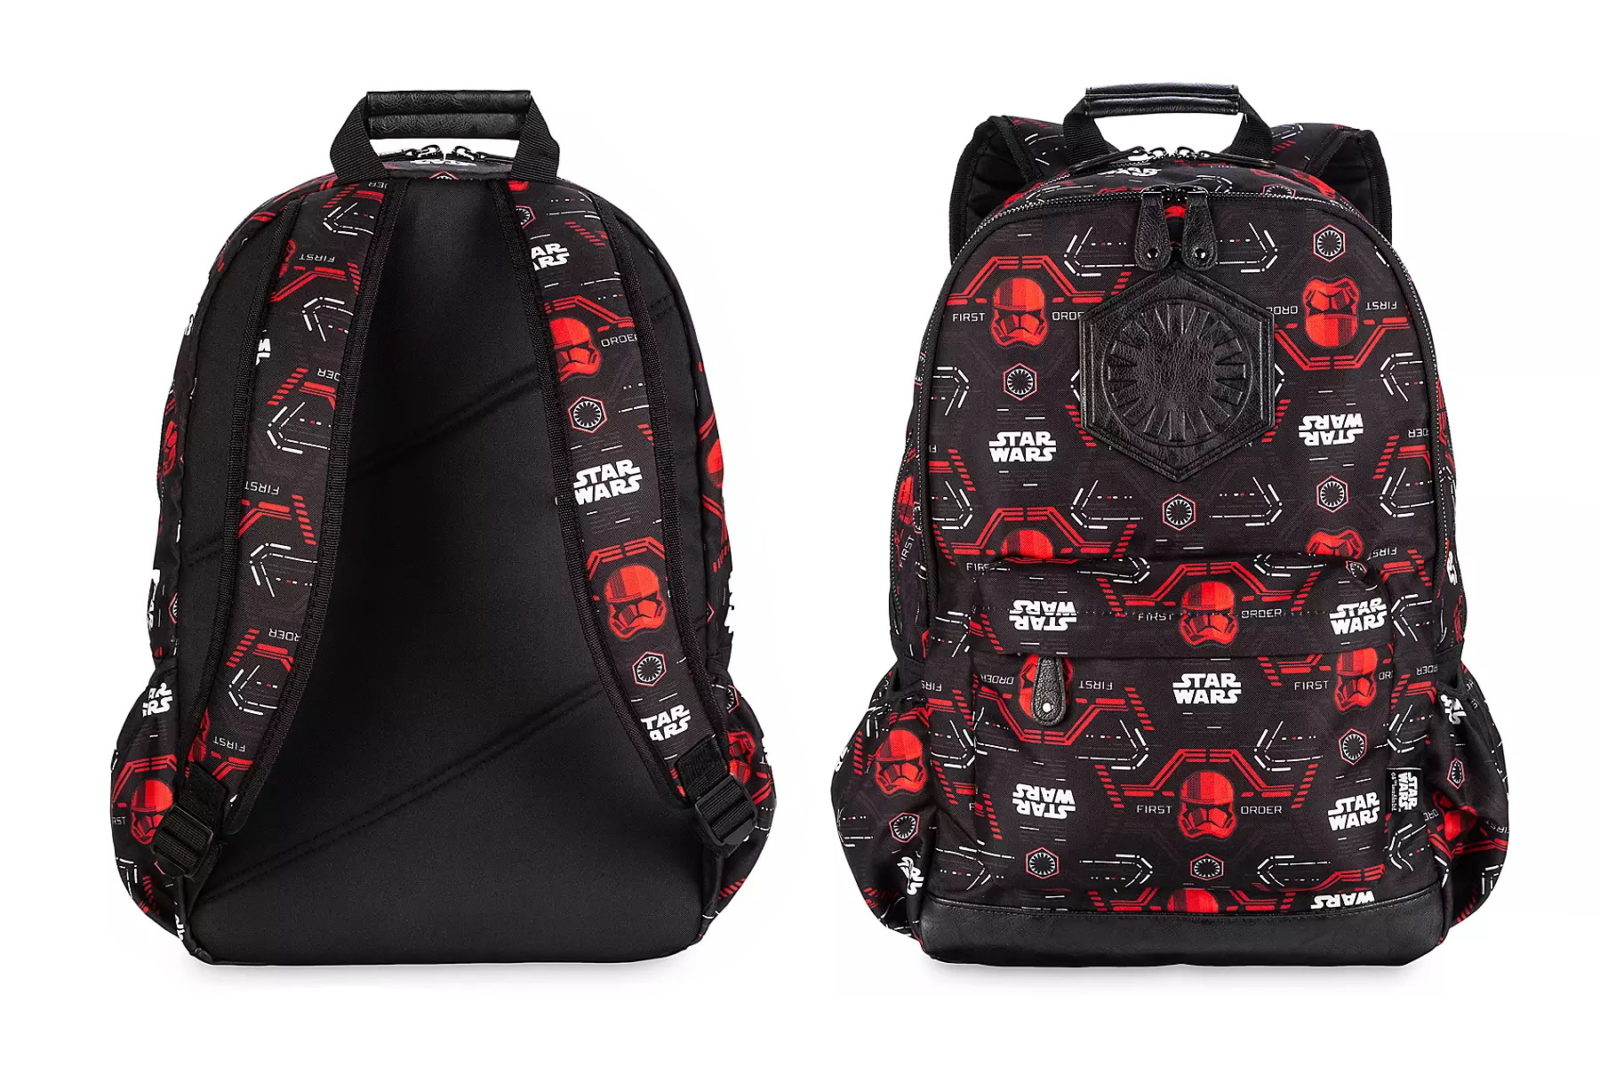 Episode 9 First Order Backpack at Shop Disney